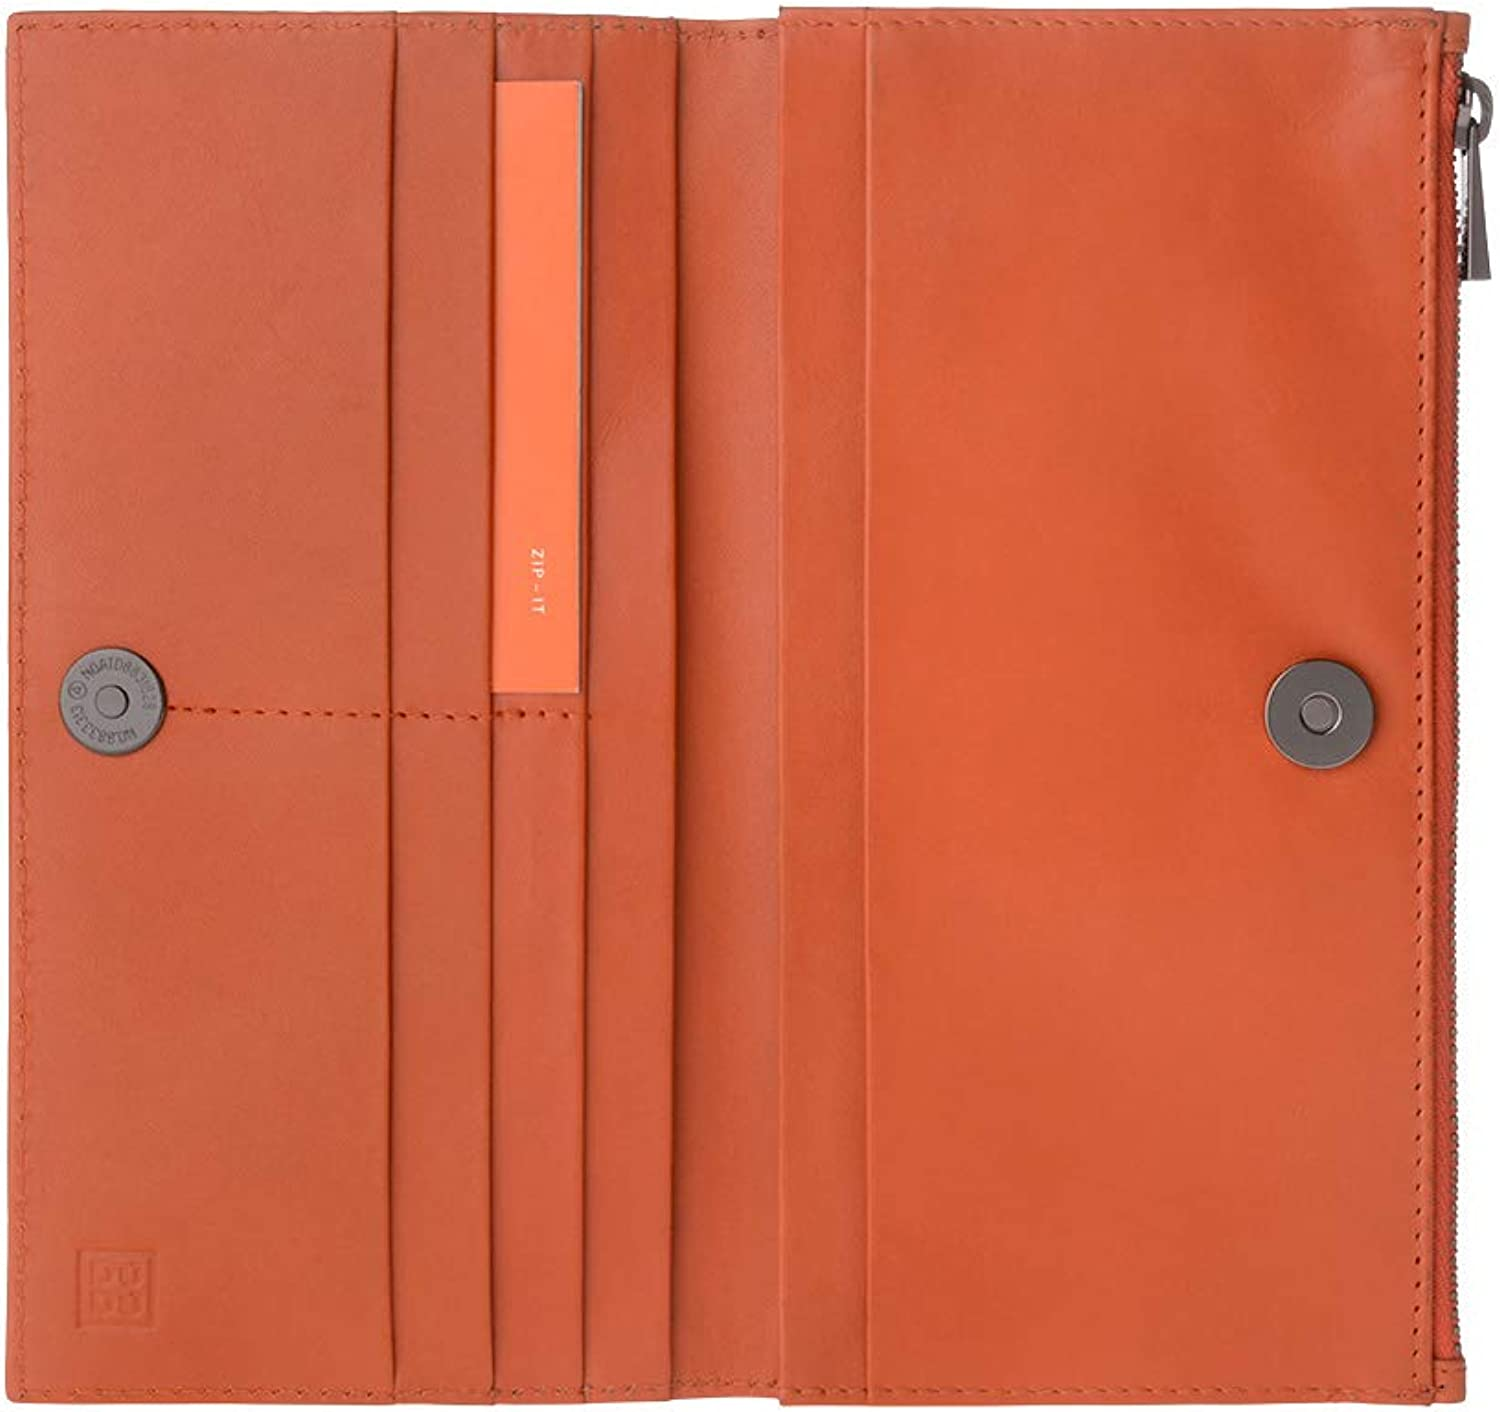 DUDU Womens Genuine Leather Wallet Long Purse with Button   Metal Zip   Card Holder Slim Design Ada orange